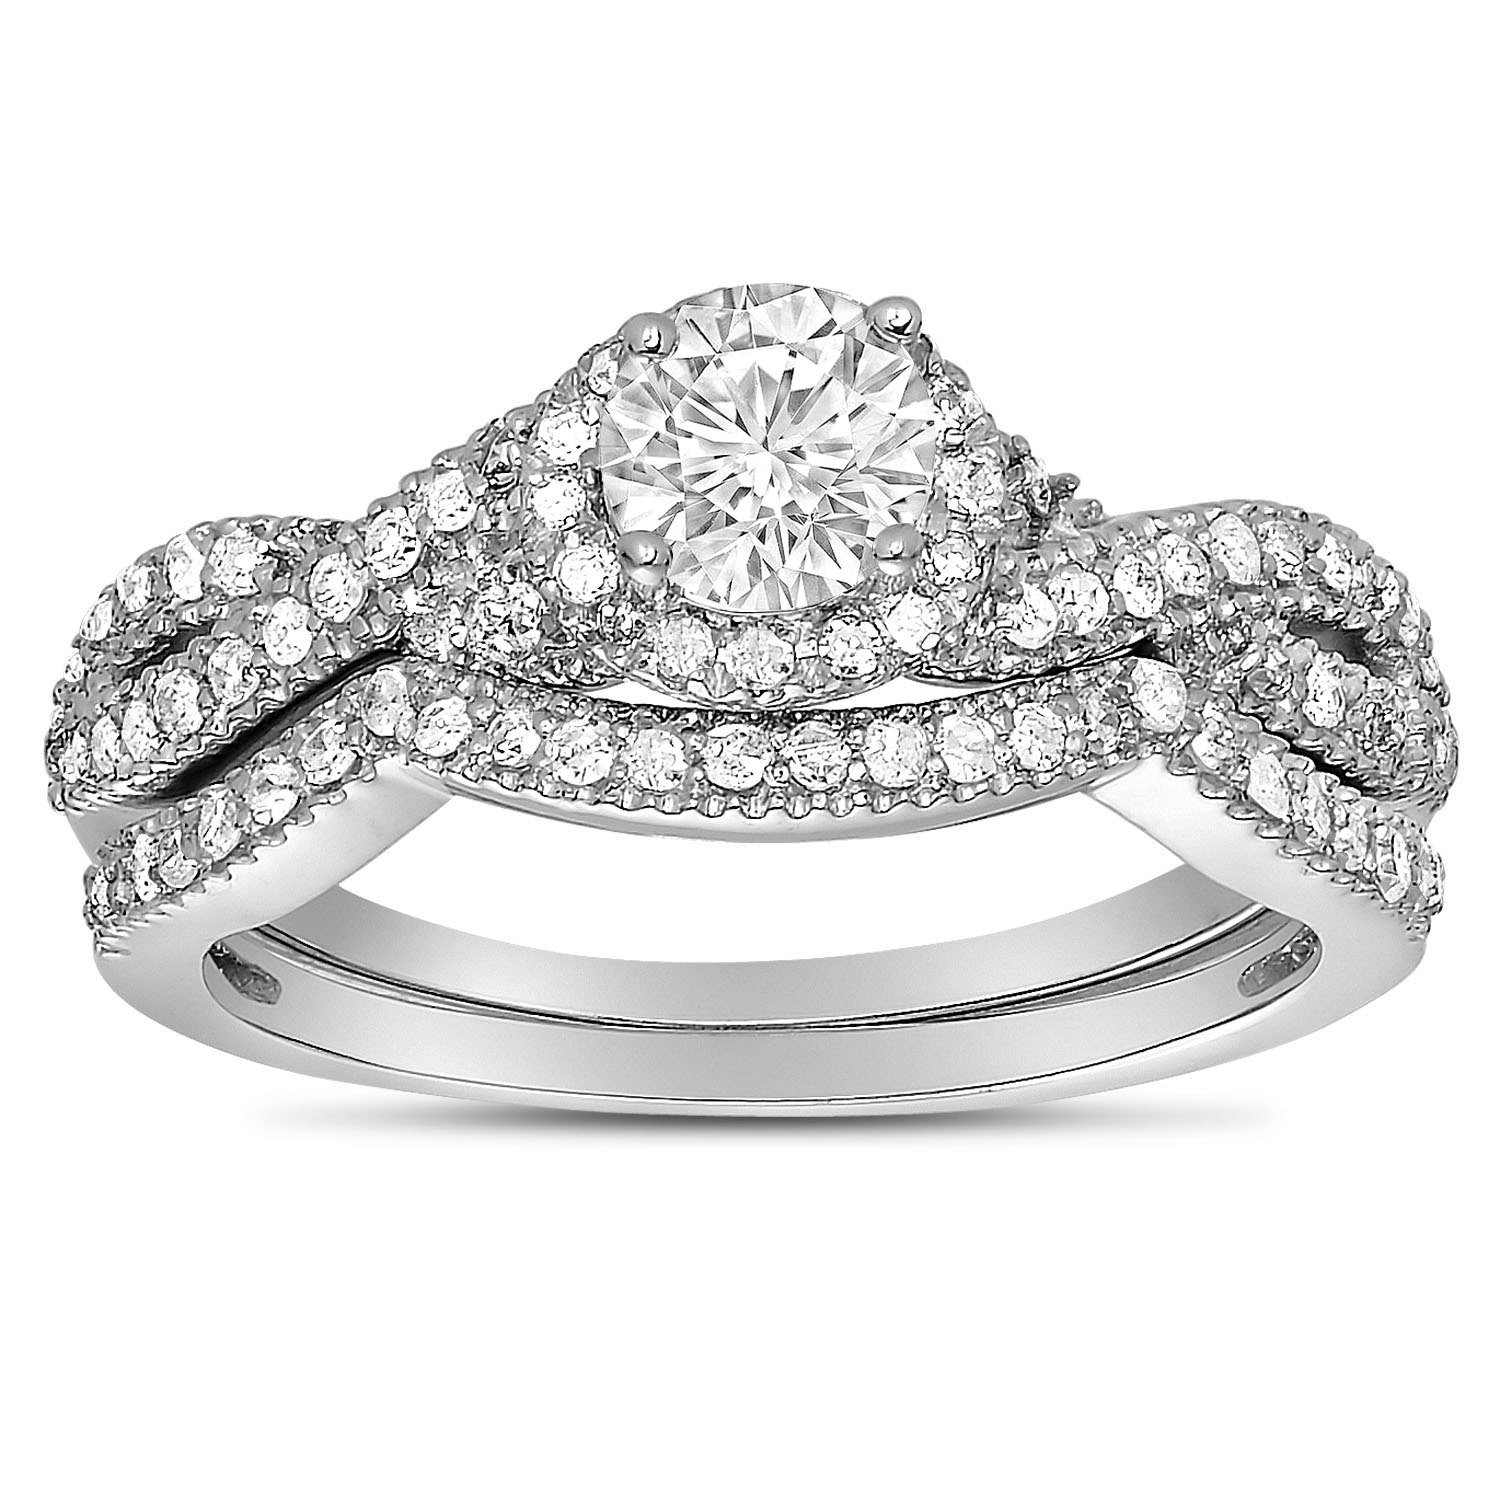 2 carat round diamond infinity wedding ring set in white gold for her - Diamond Wedding Rings For Her